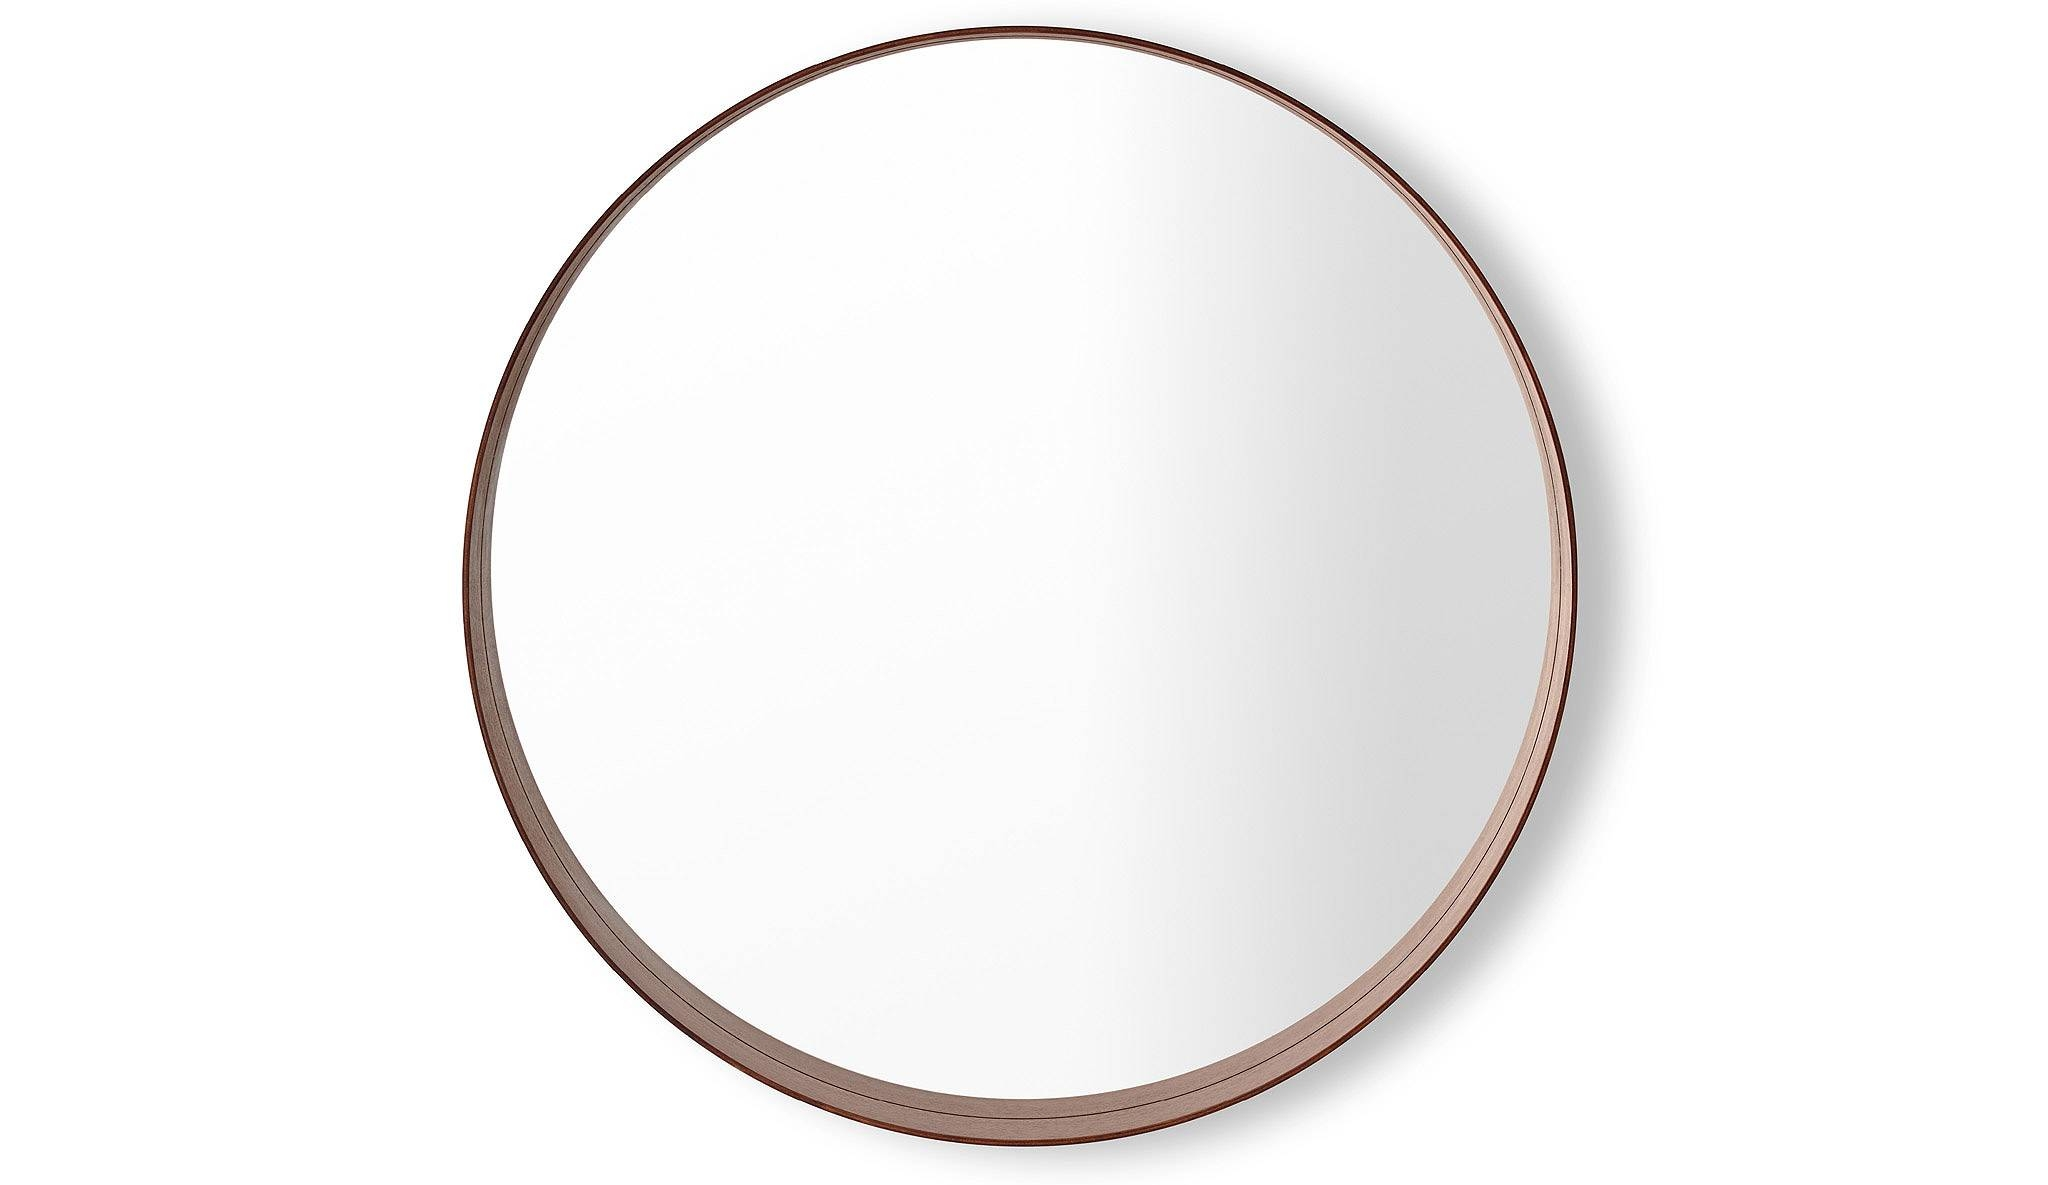 Round Mirrors - Circular & Oval Mirrors - Ikea throughout Large Circular Mirrors (Image 20 of 25)